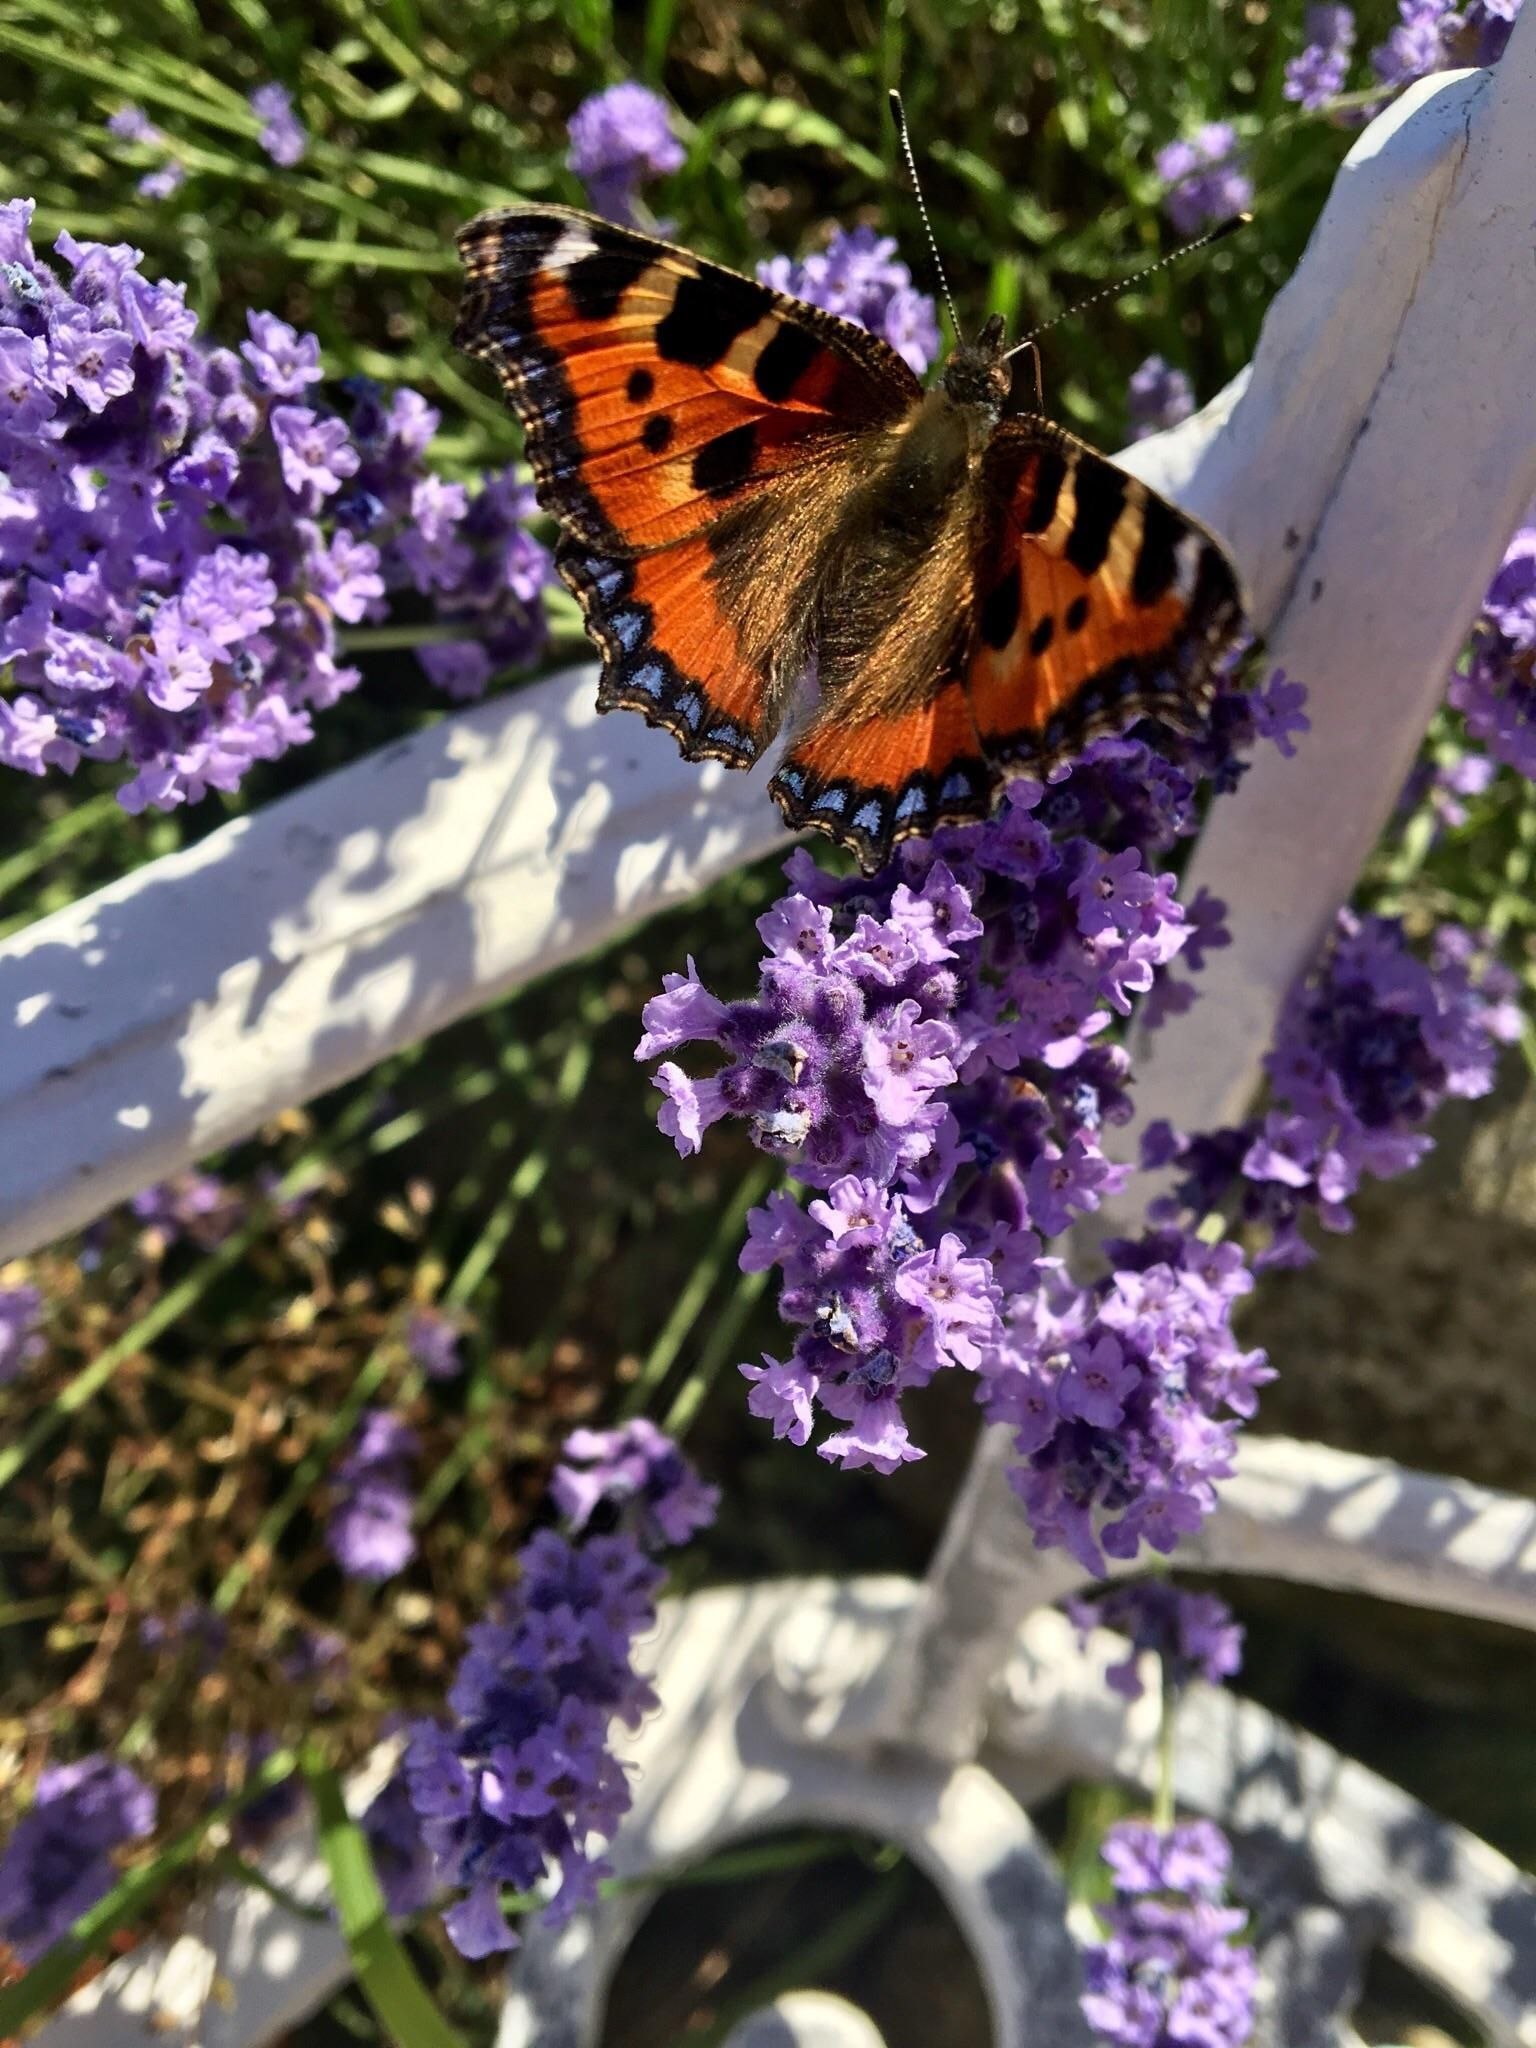 I watched this small tortoiseshell butterfly enjoying my